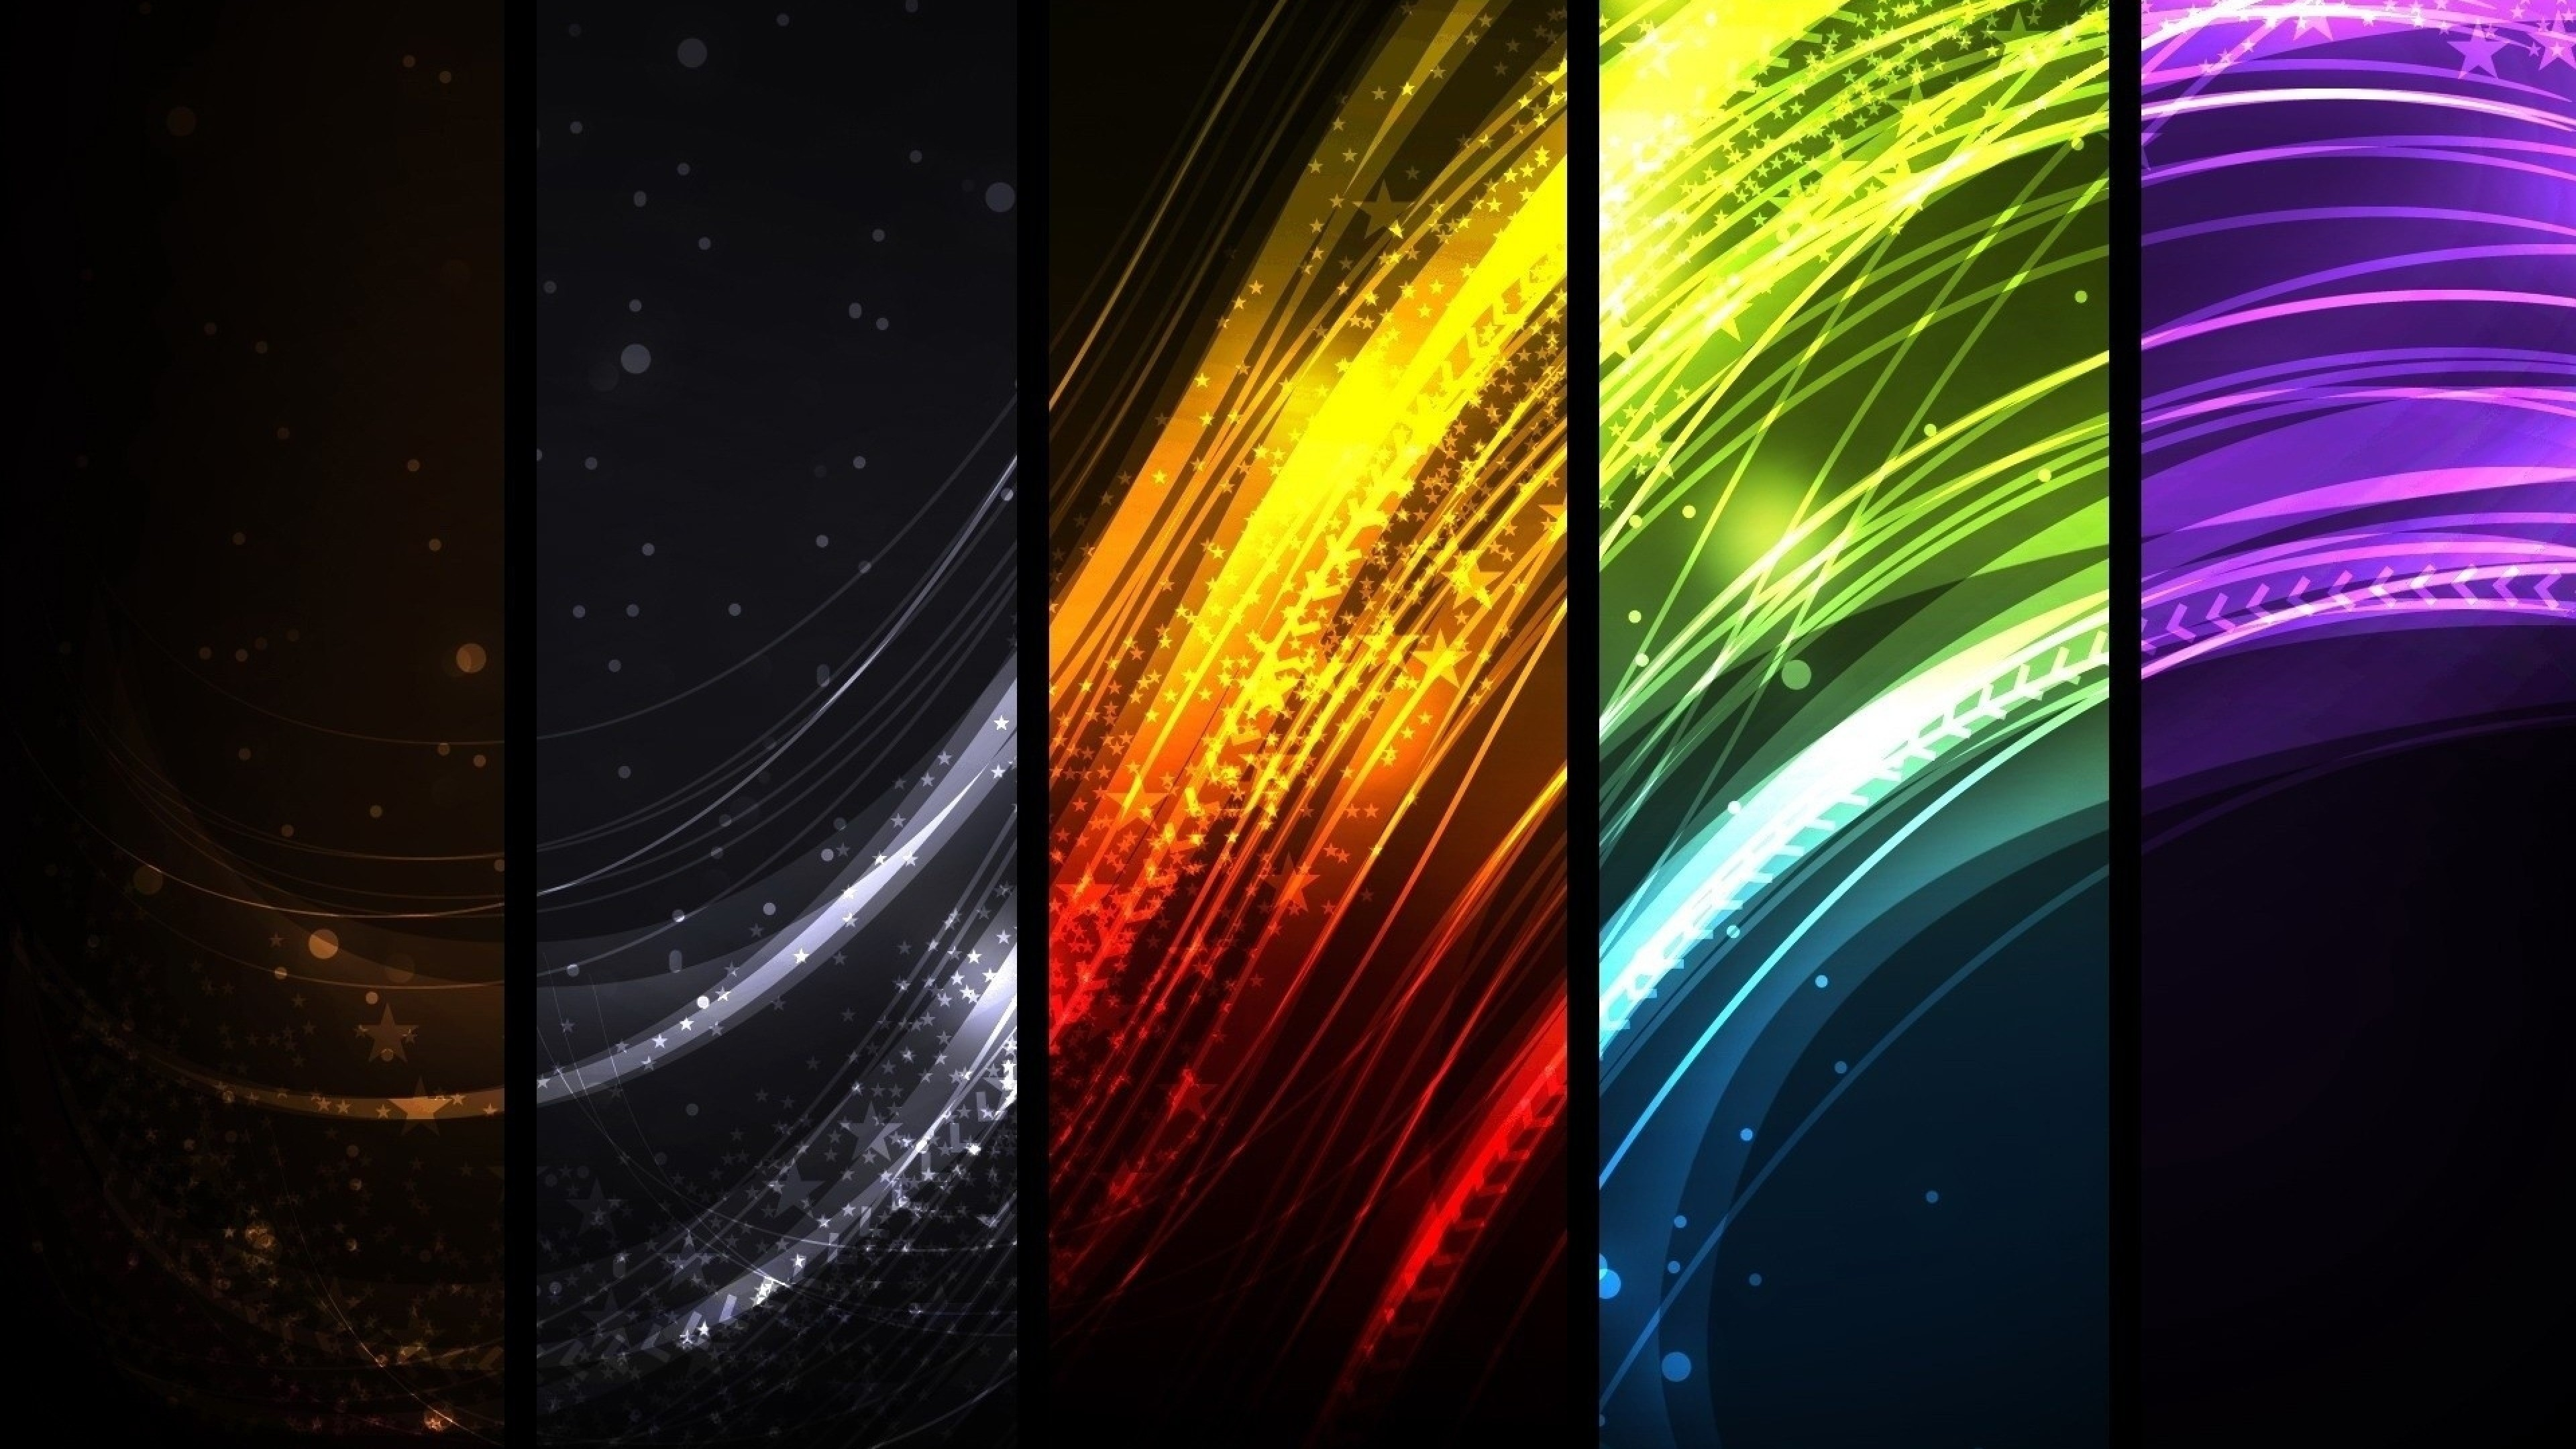 … Background 4K Ultra HD. Wallpaper colorful, rays, lines,  rectangles